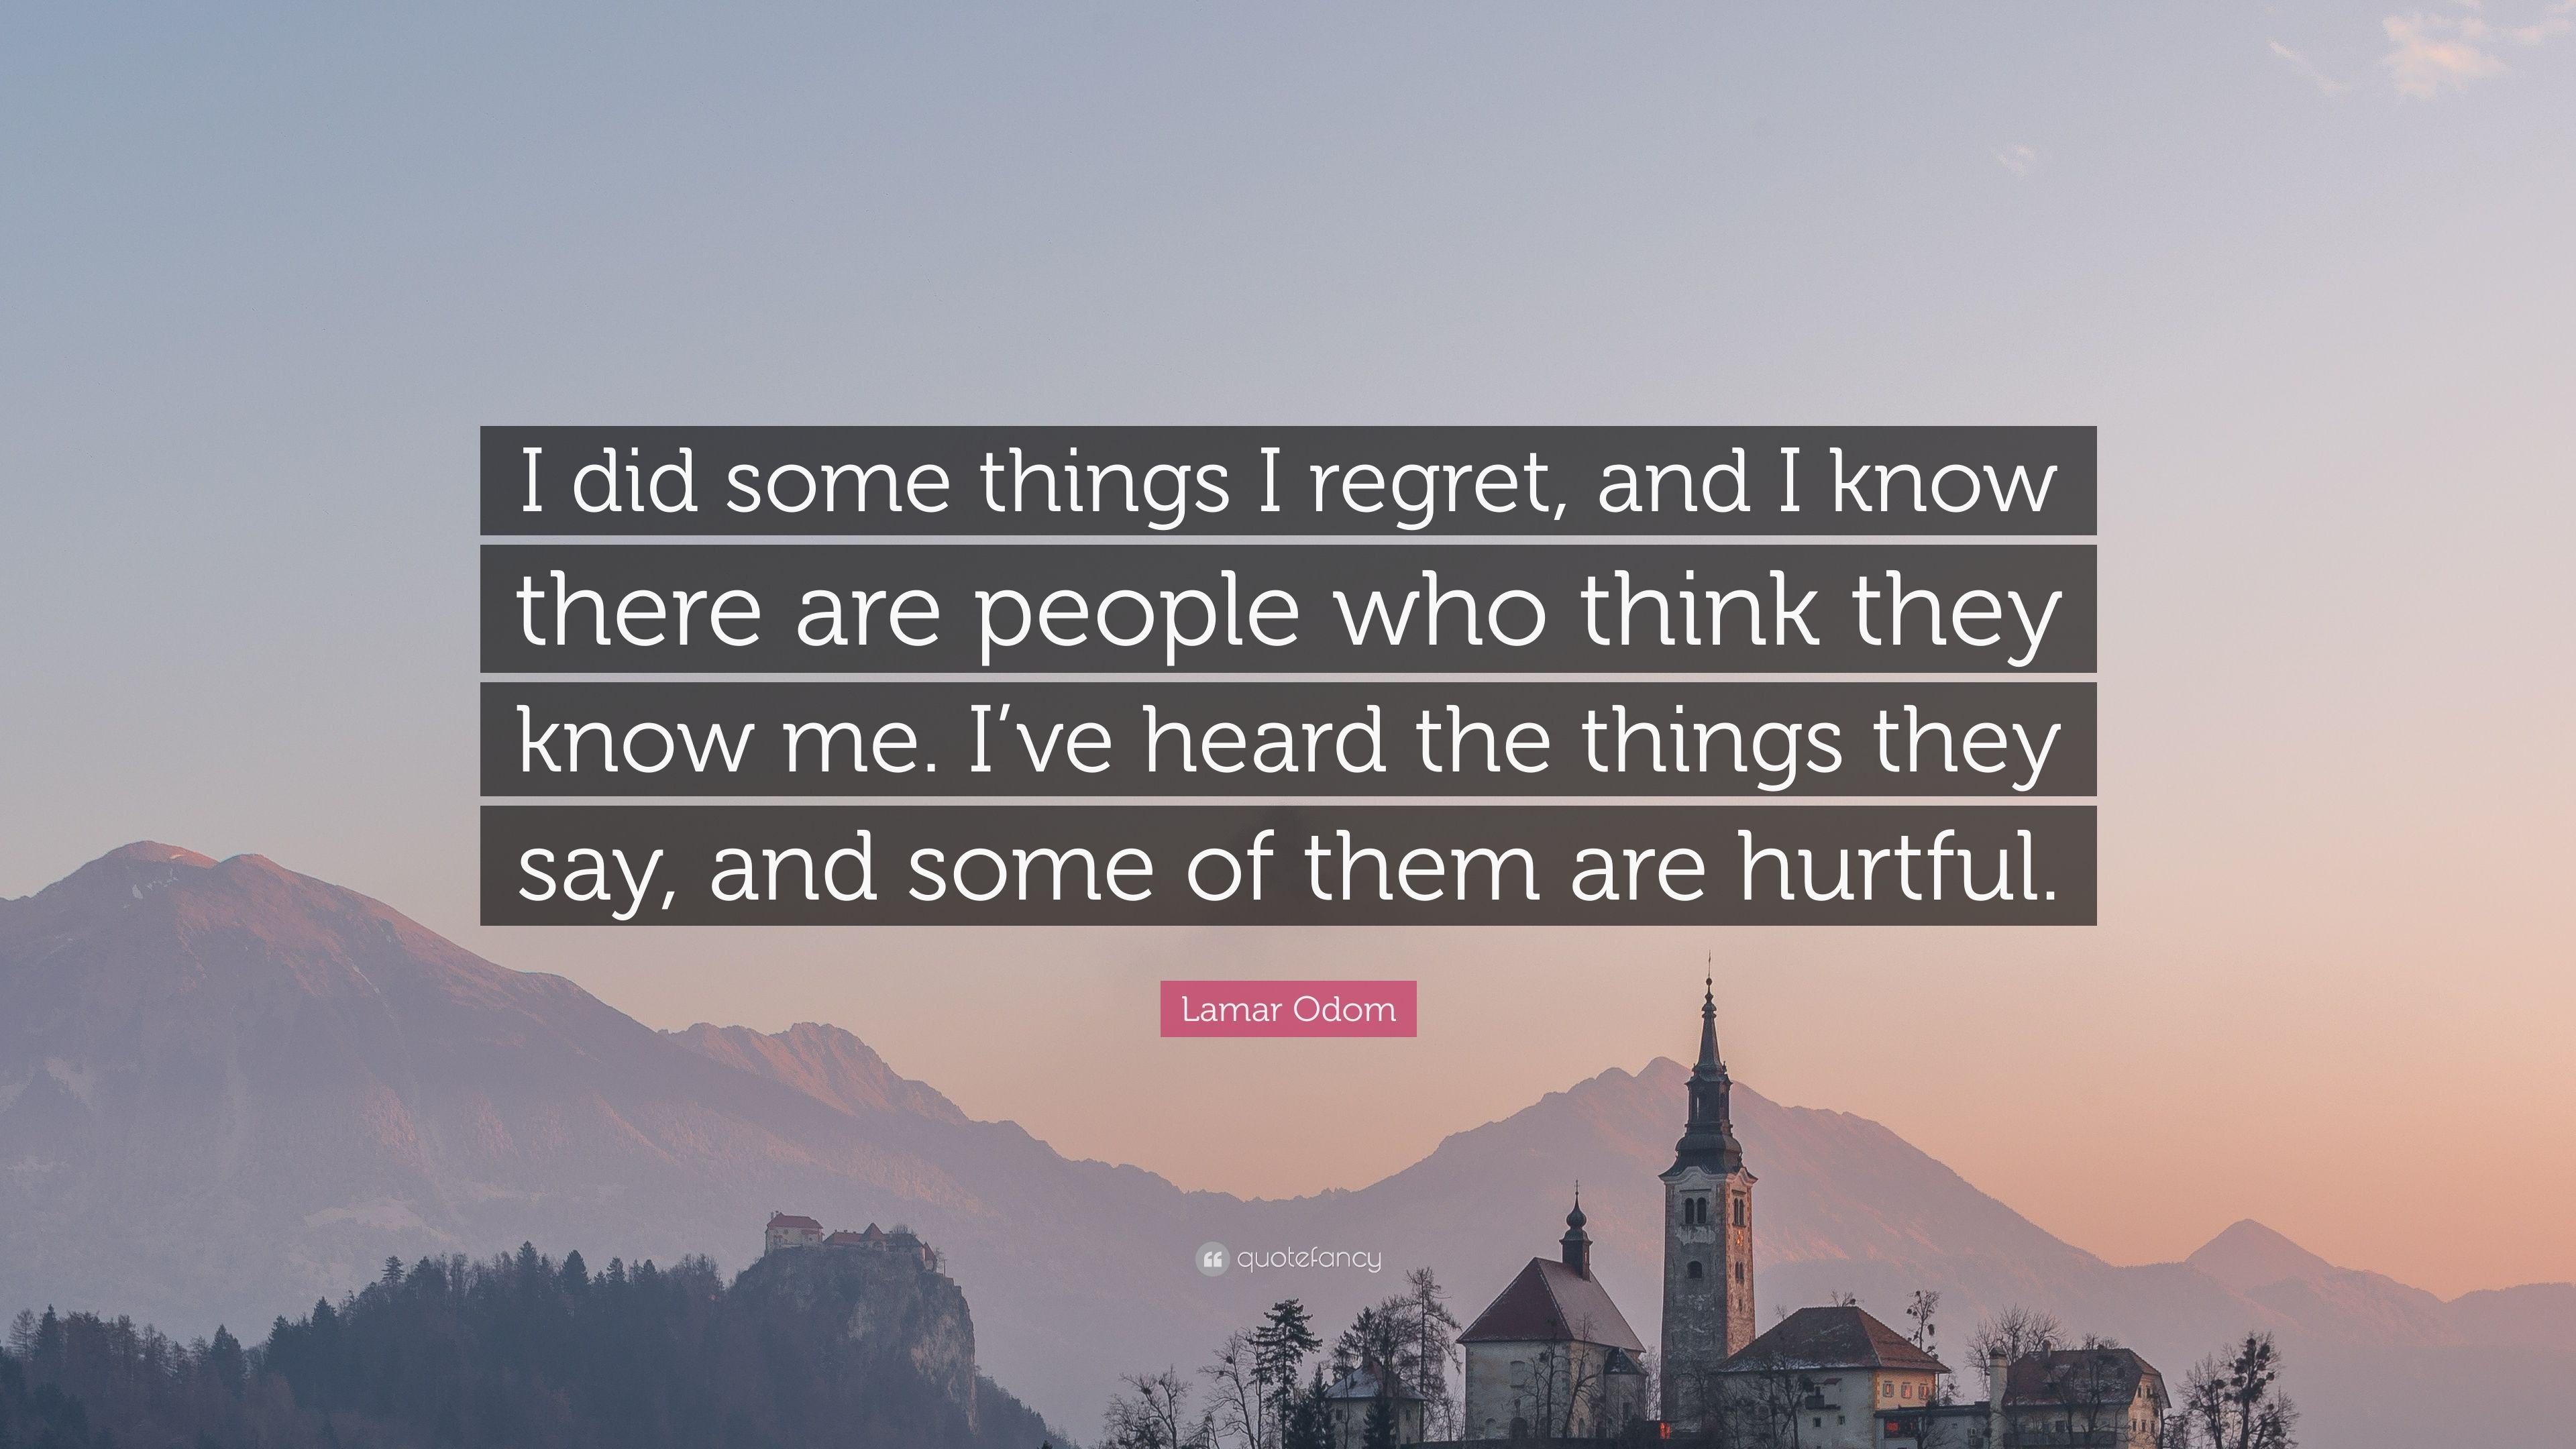 Ordinaire Lamar Odom Quote: U201cI Did Some Things I Regret, And I Know There